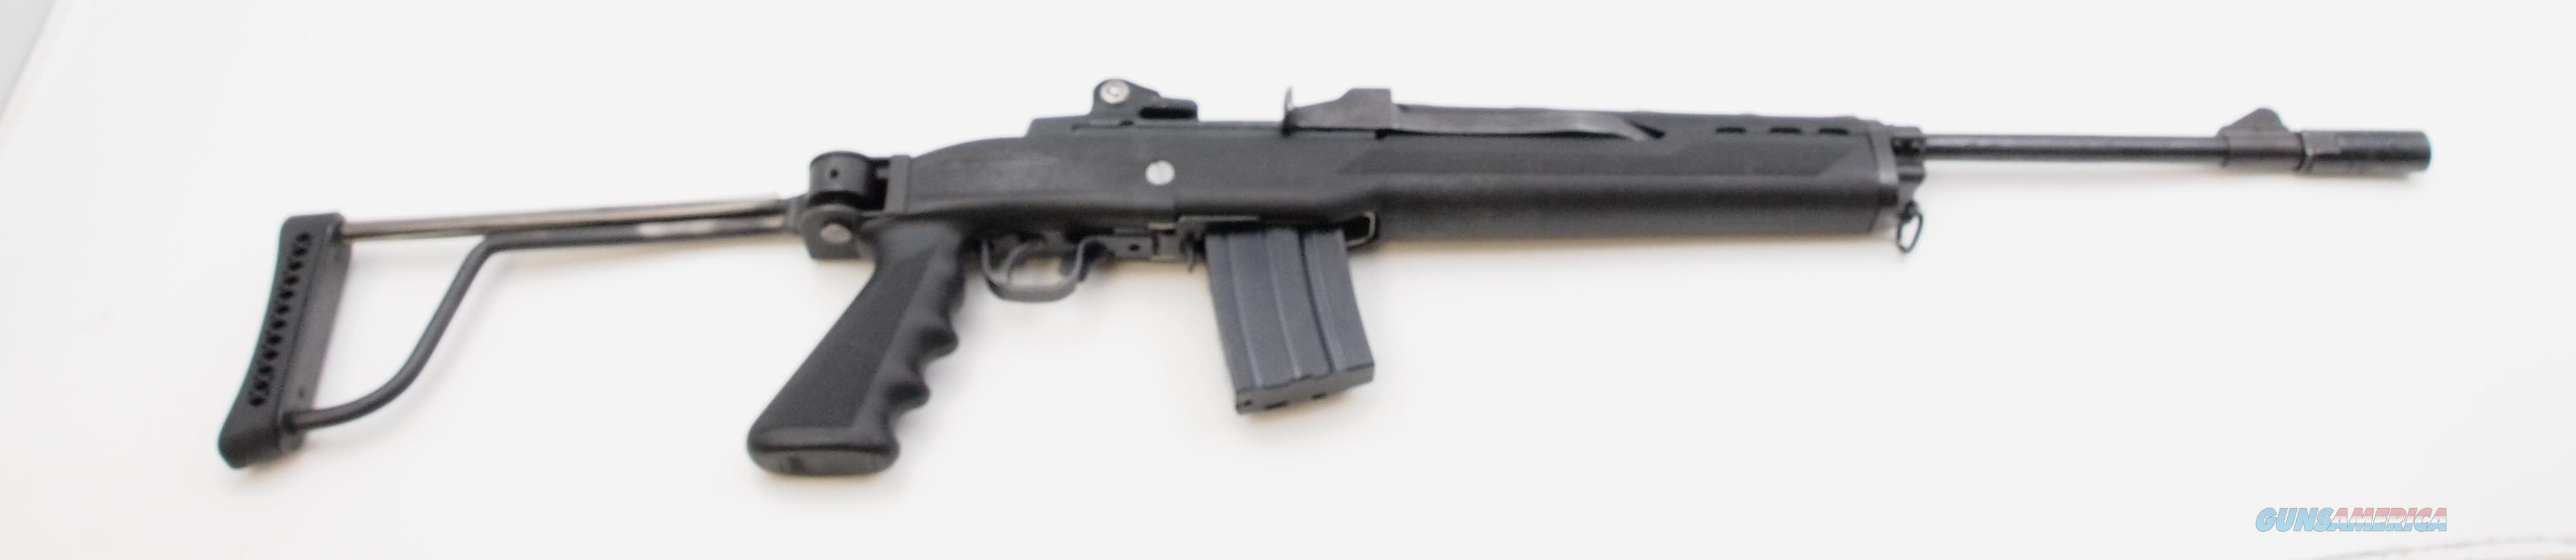 RUGER MINI 14 SIDE FOLDER .223  Guns > Rifles > Ruger Rifles > Mini-14 Type